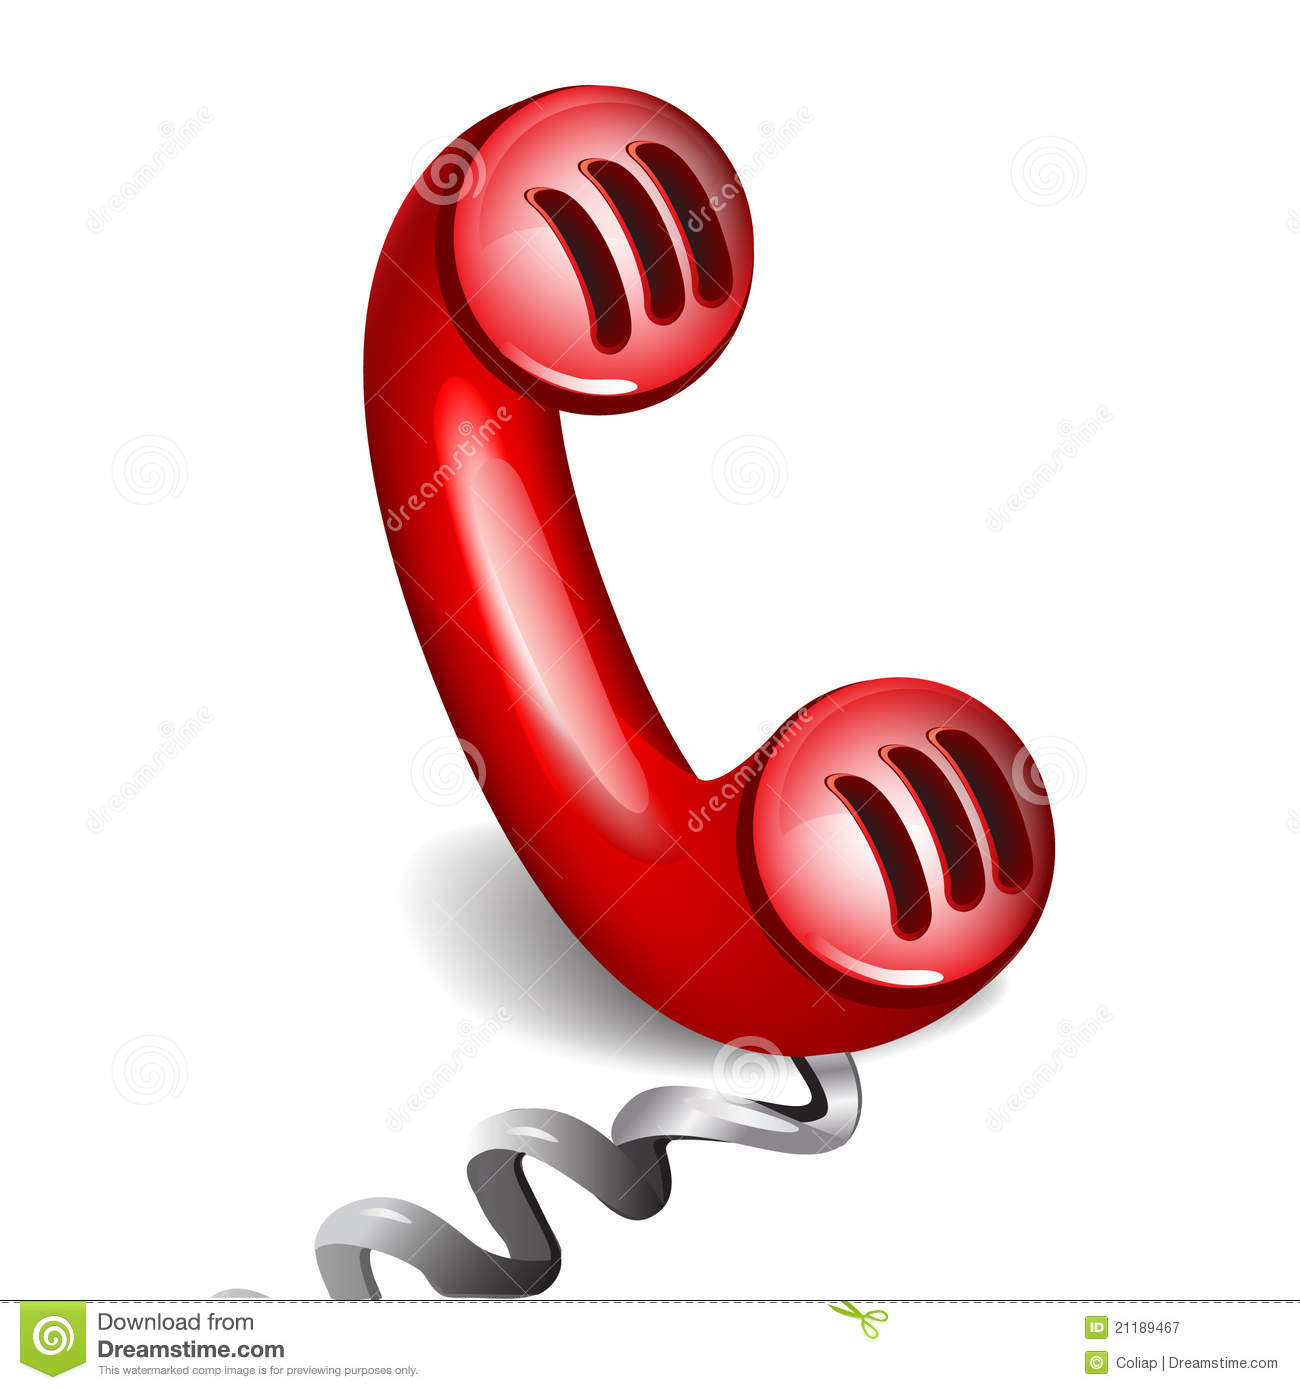 Retro red phone stock vector. Illustration of illustration ...